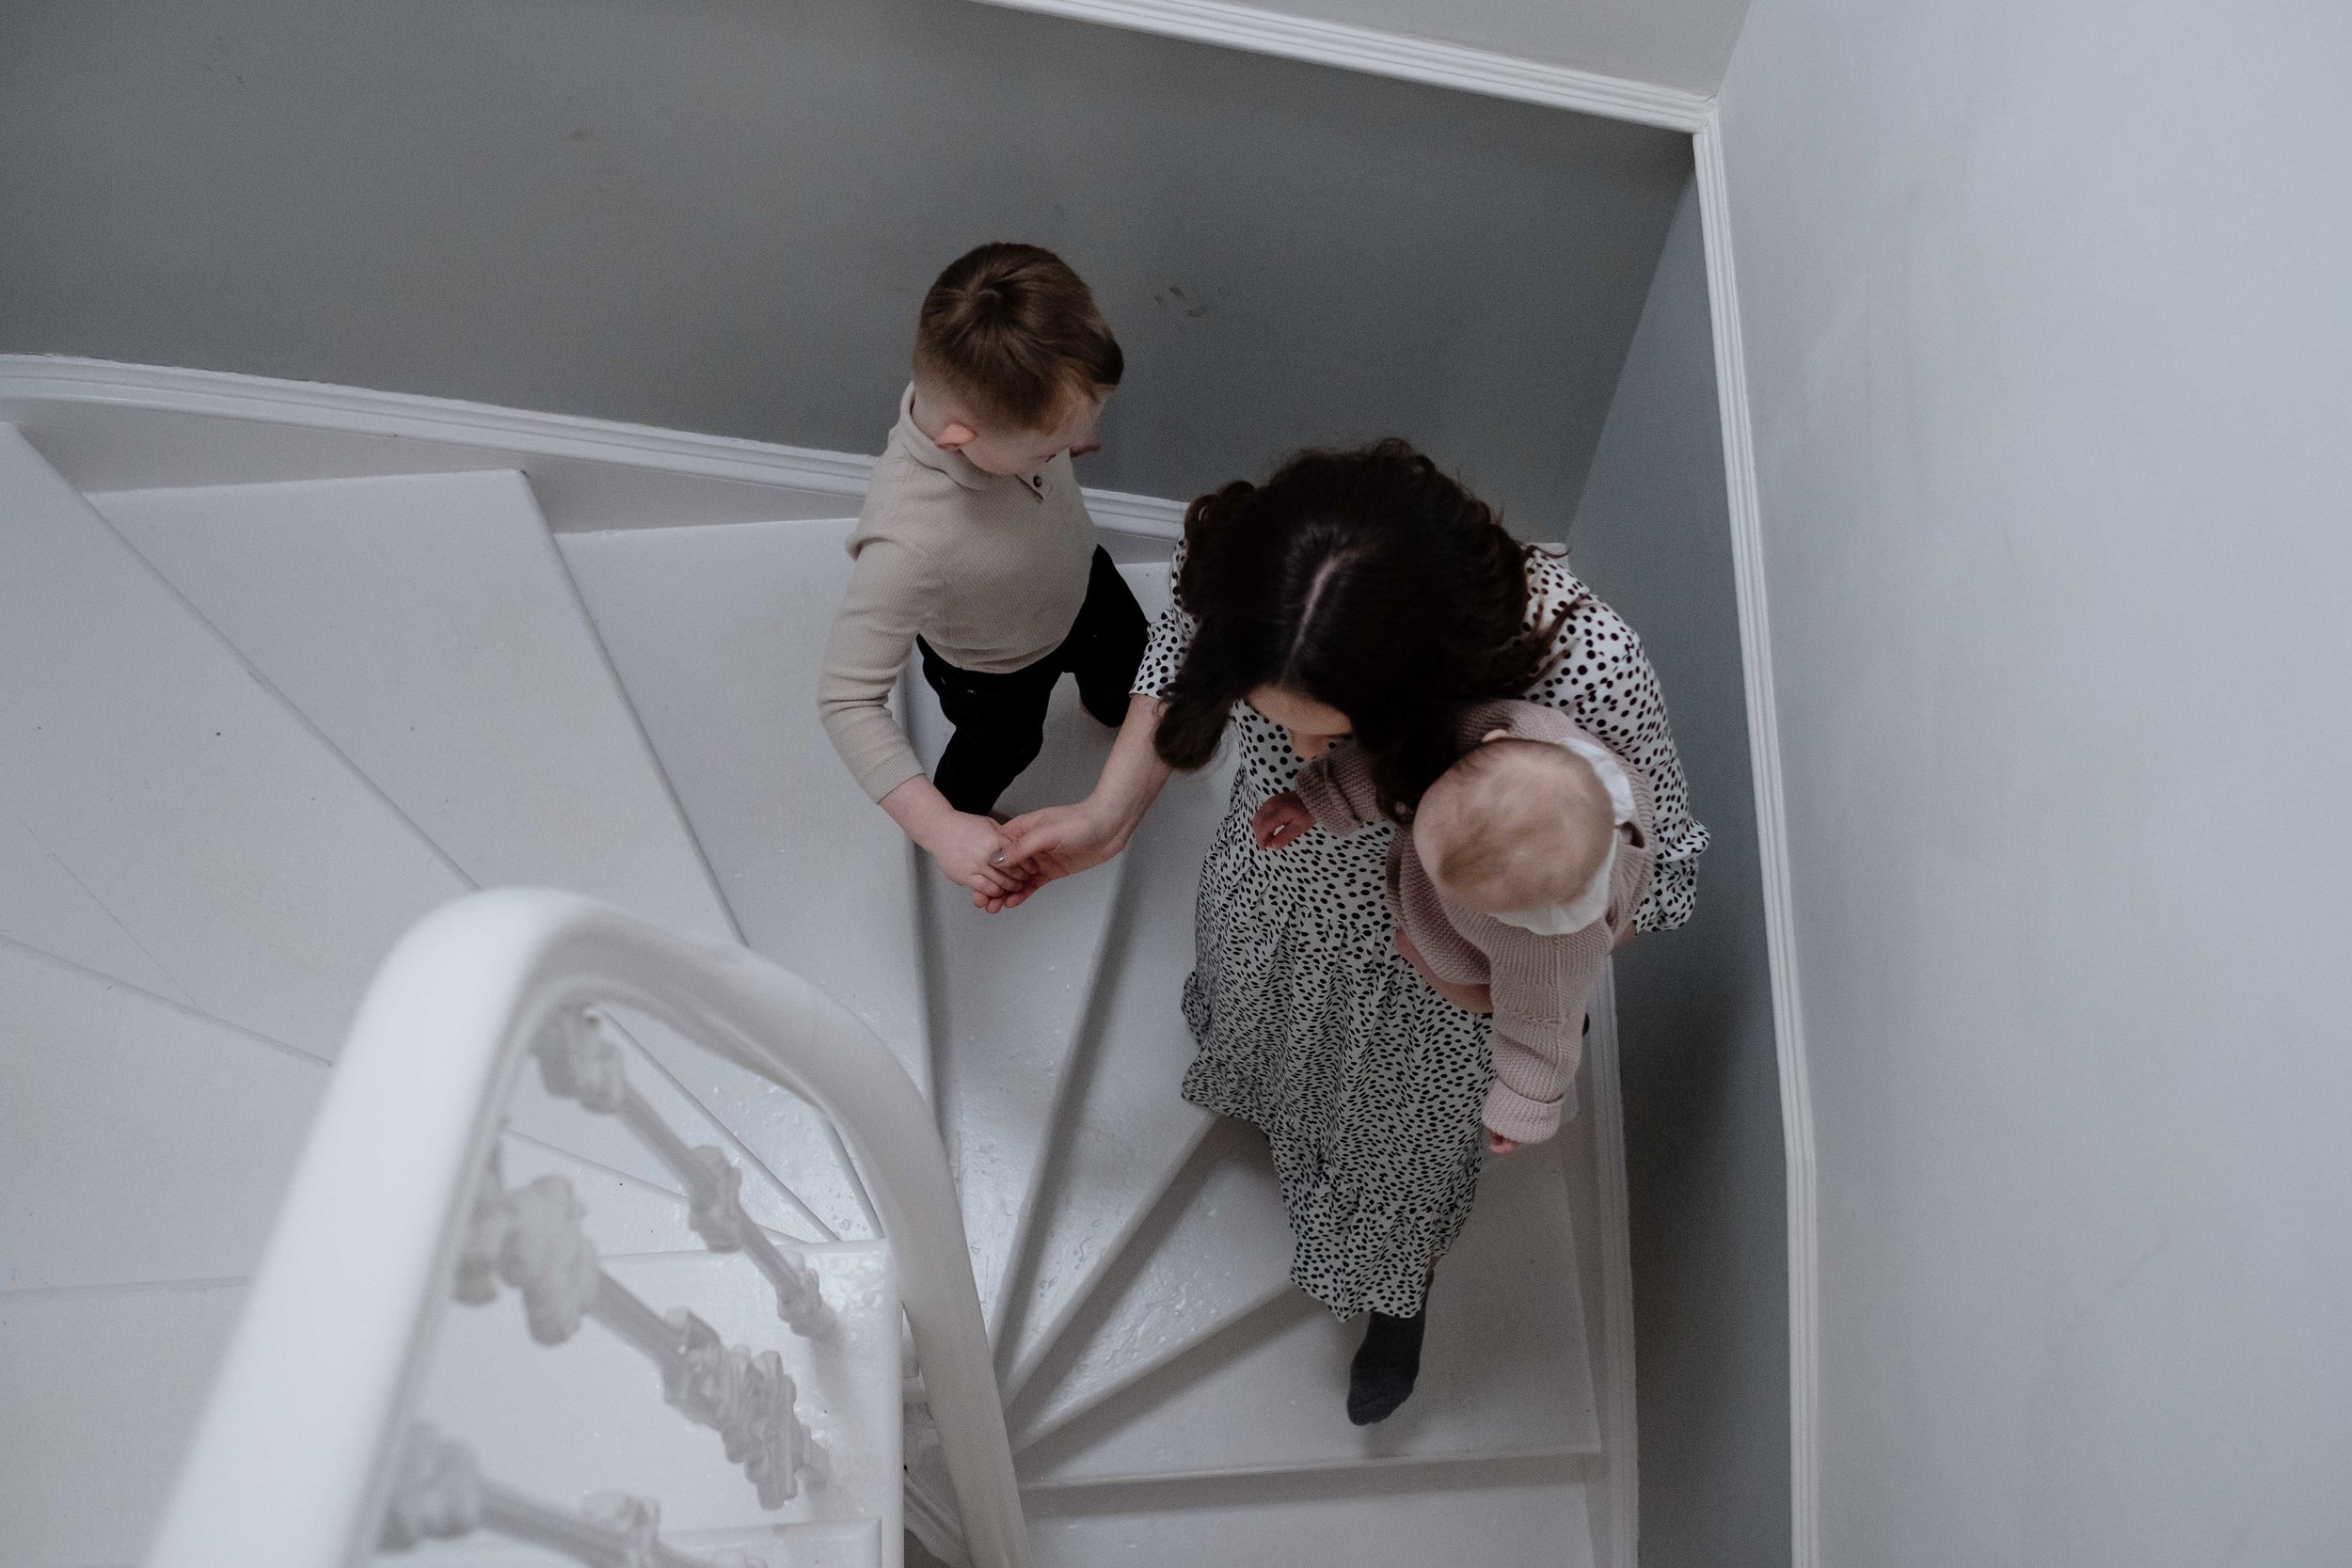 a mother is walking down the stairs of her house carrying her baby daughter and holding her son's hand.